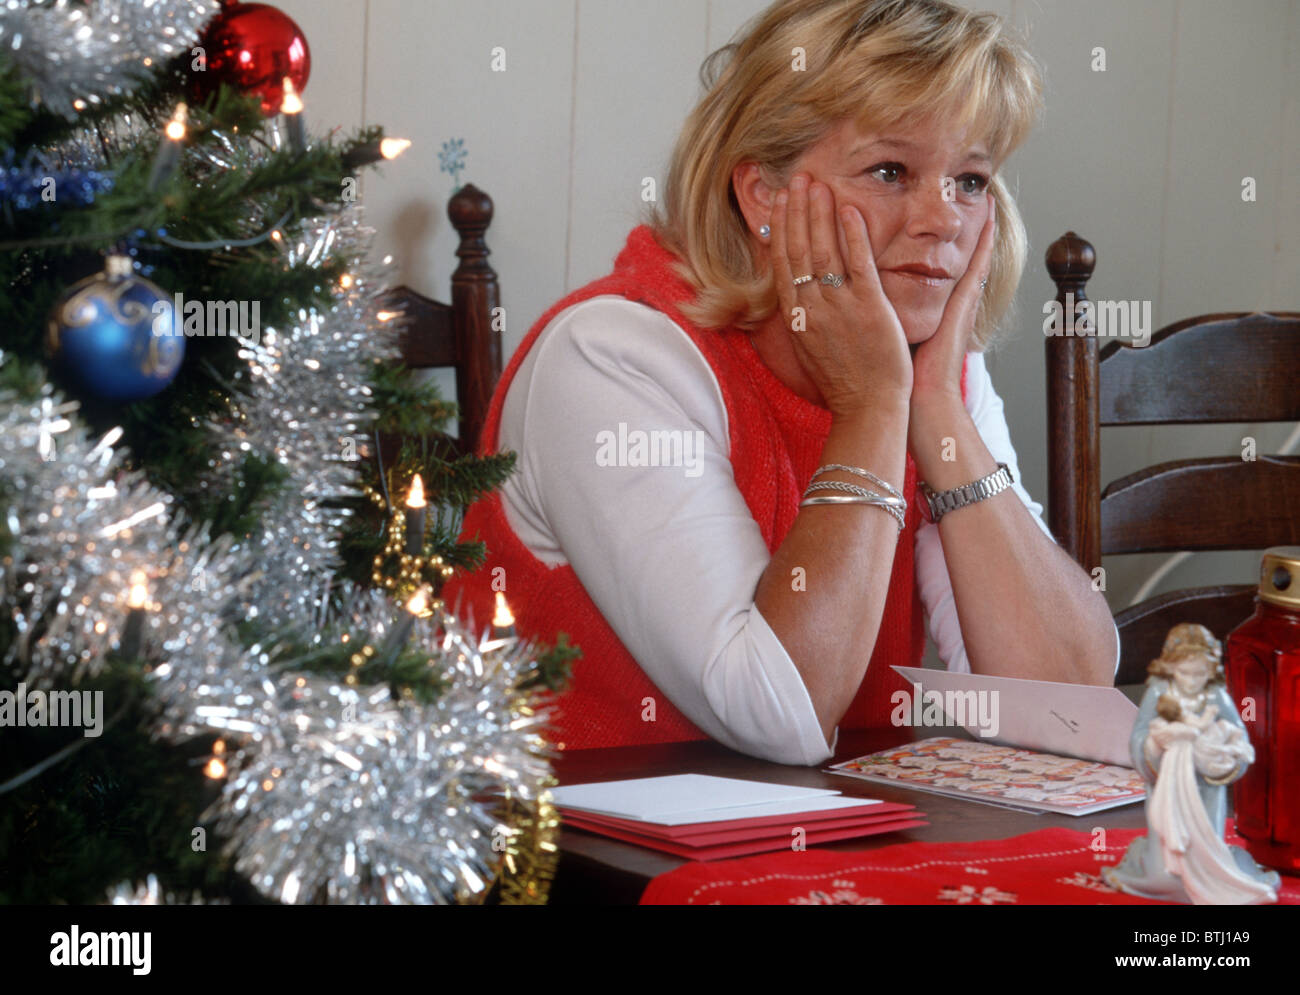 Christmas blues: Adult woman contemplating near christmas tree an christmas carts, she is unhappy. - Stock Image